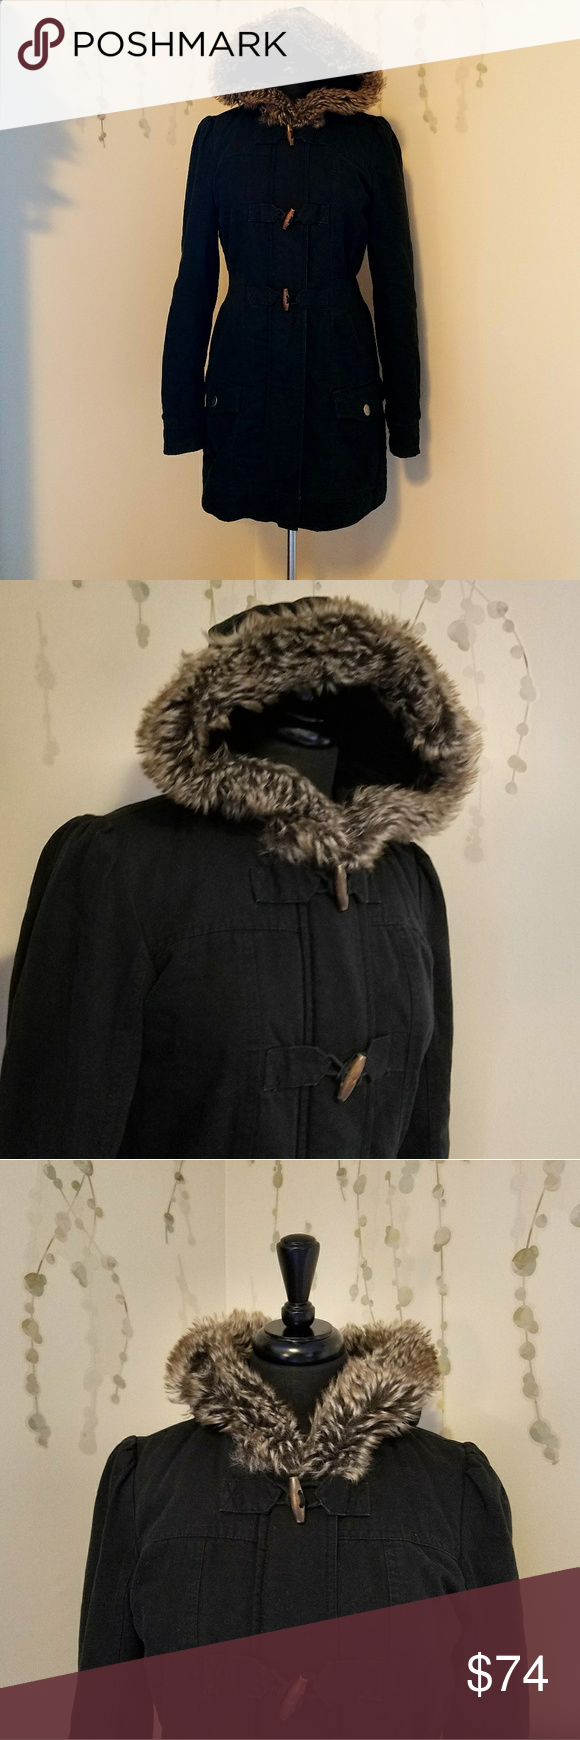 ROXY Knee-Length Winter Coat L STYLE: K474798 Hood trimmed with faux fur.  Zips closed, snaps closed, and toggles closed.  Wear it a variety of ways!  Has pockets that button closed. Preowned with no flaws.   Size L Roxy Jackets & Coats Utility Jackets